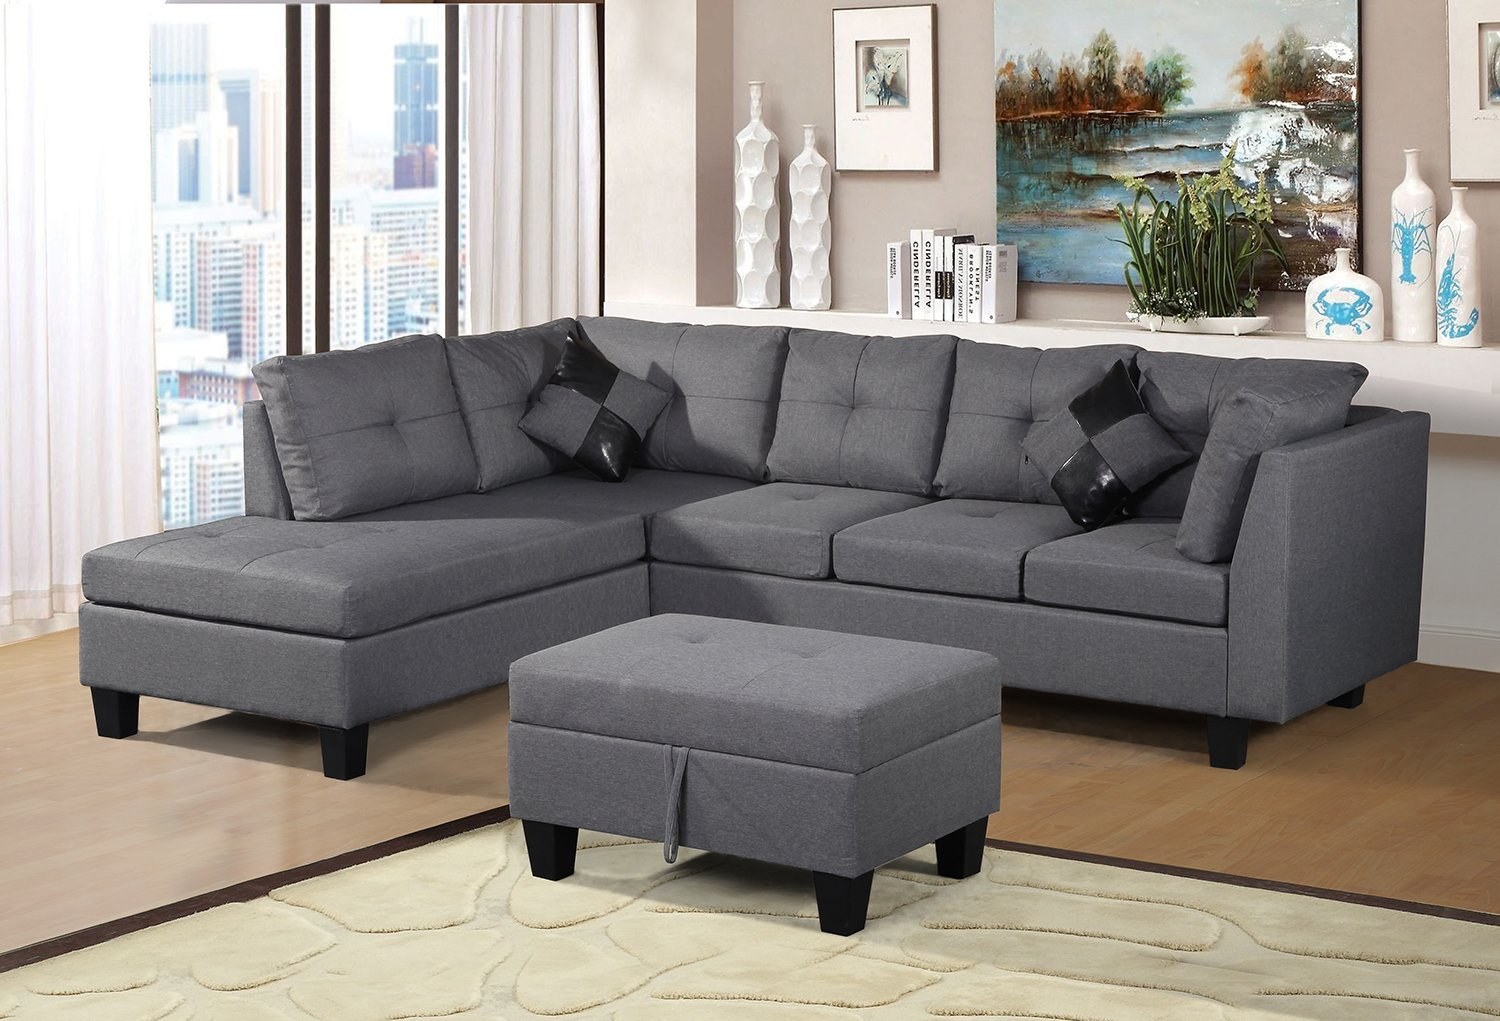 Merax. Sofa 3-piece Sectional Sofa with Chaise Lounge/Storage Ottoman